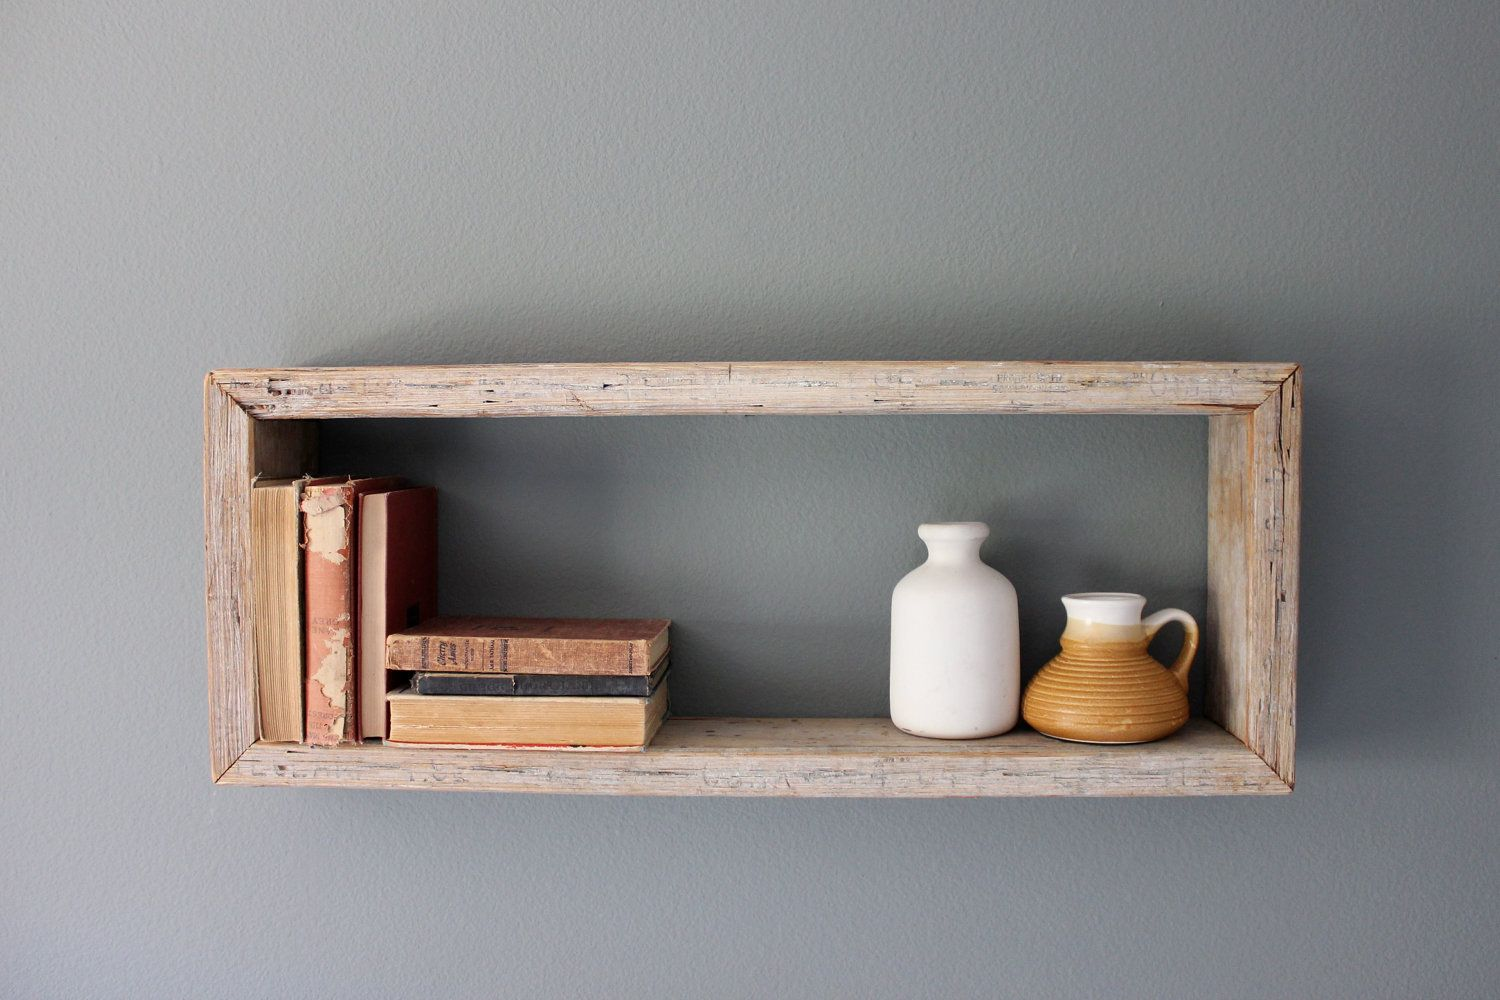 Reclaimed Wood Box Shelves Wooden Box Shelves Wood Box Shelves